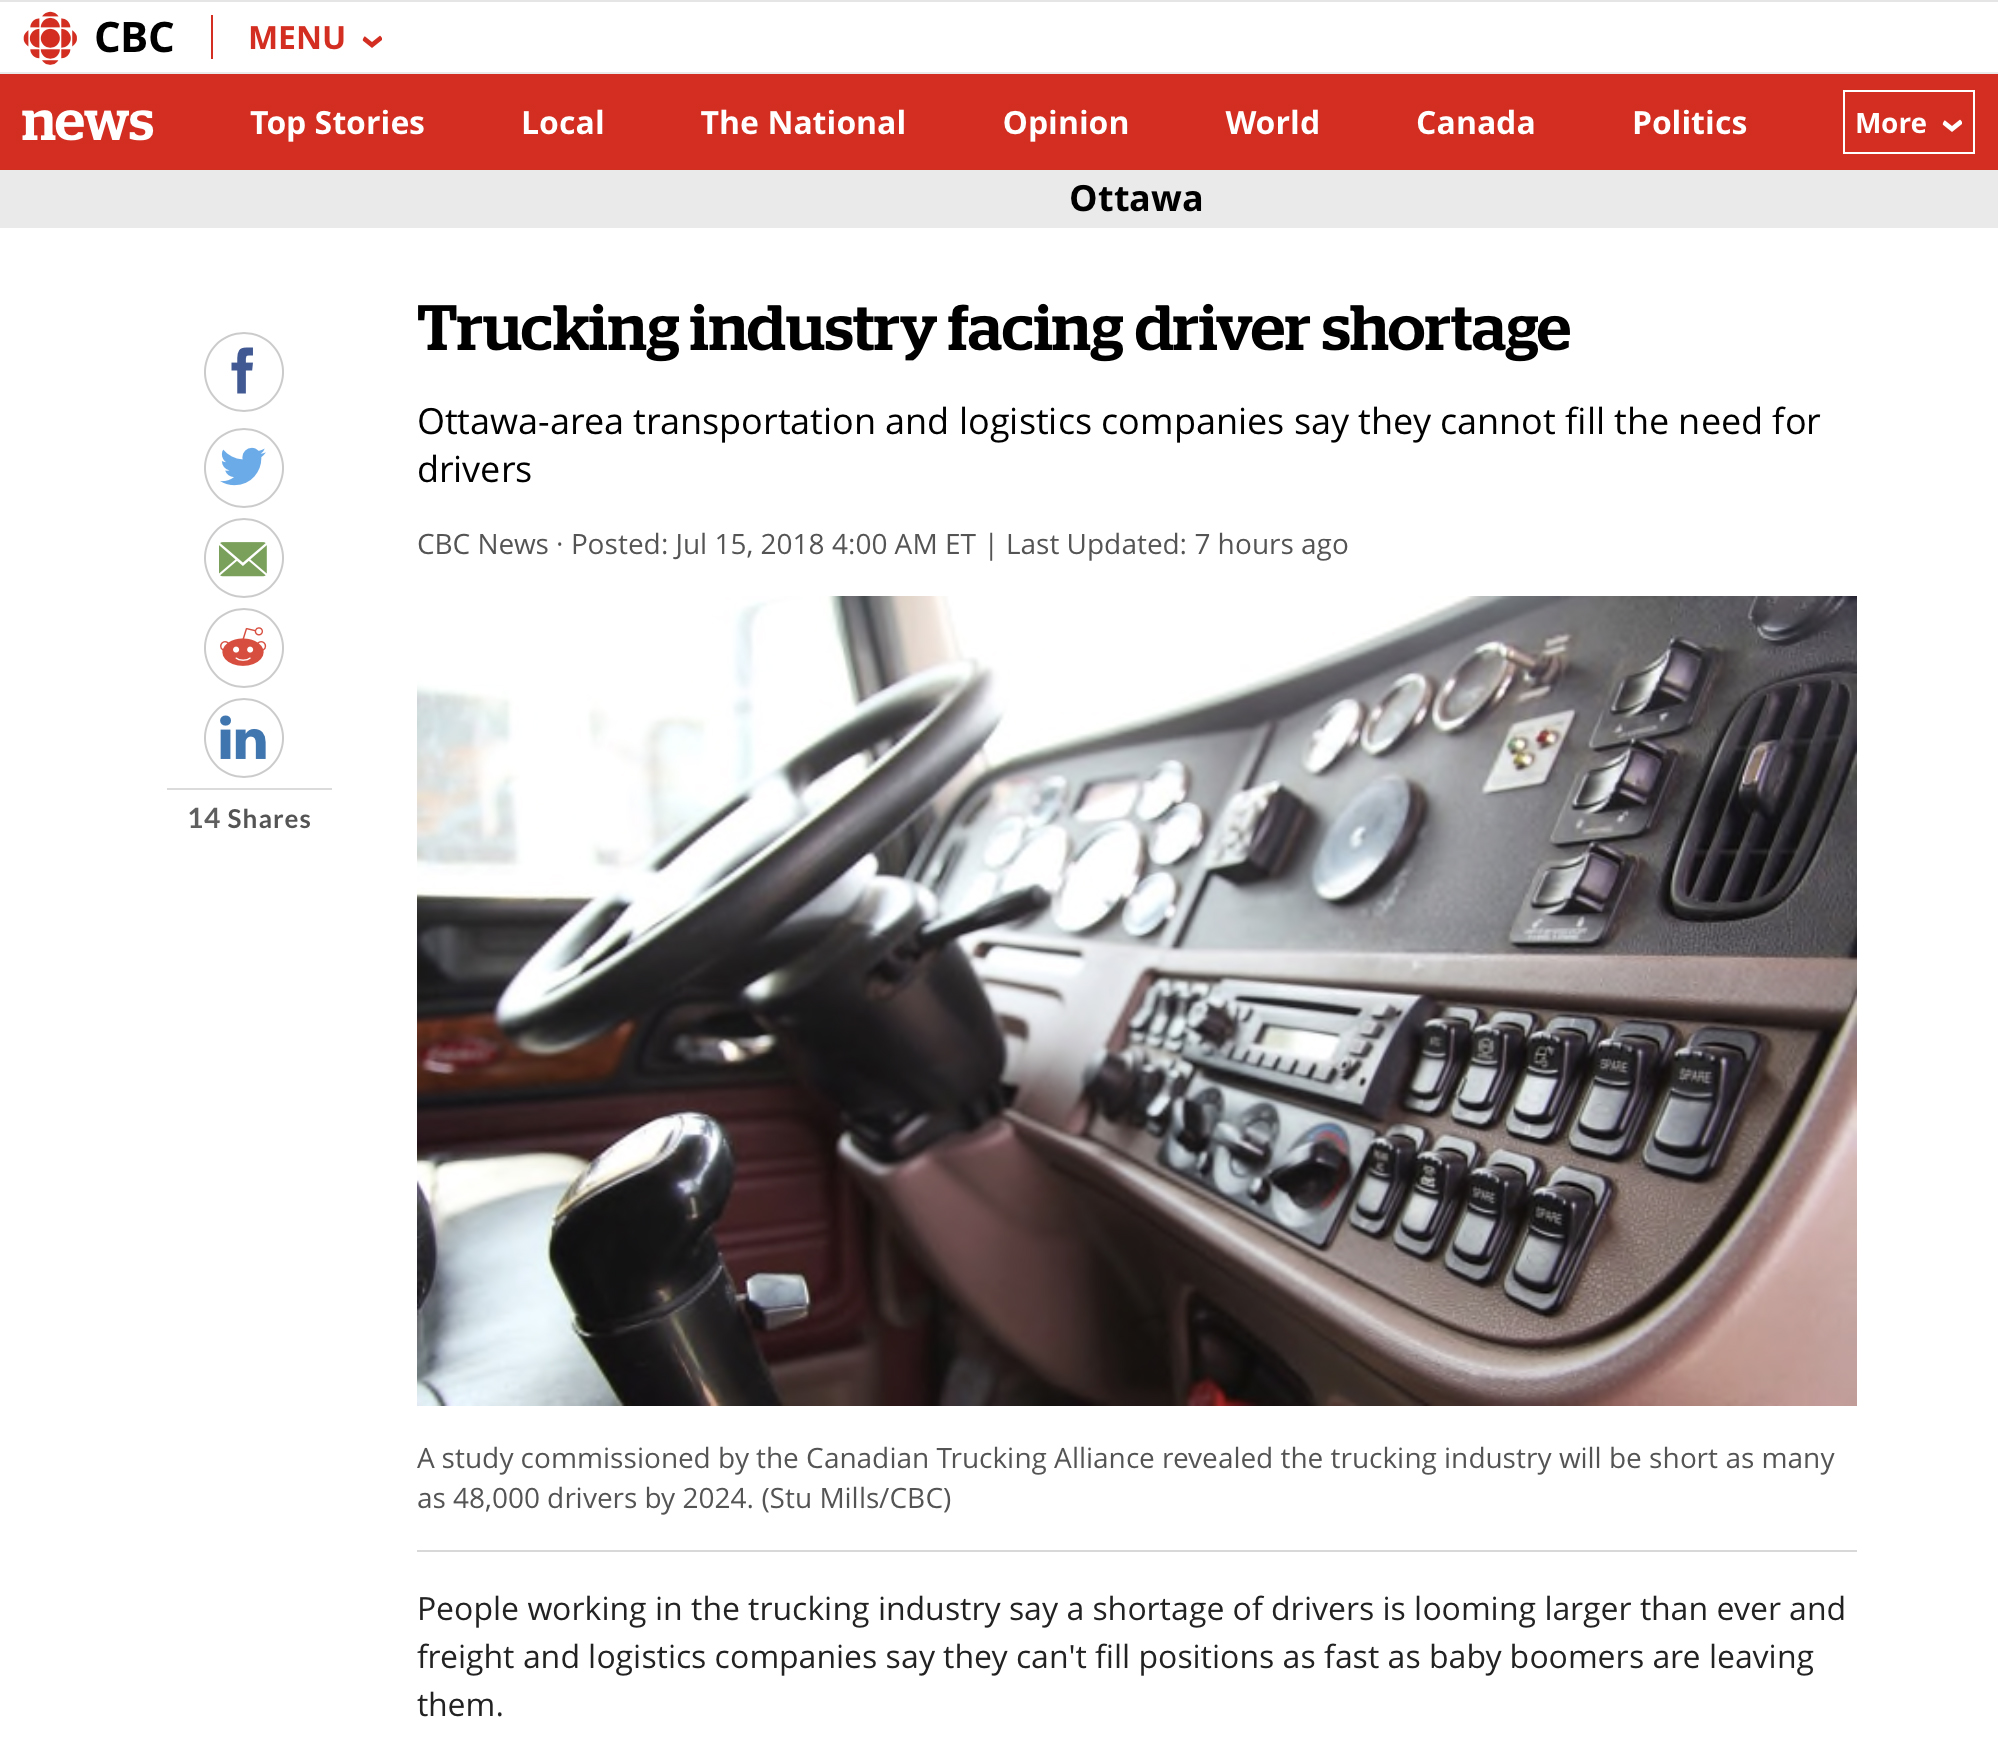 CBC News: Trucking industry facing driver shortage